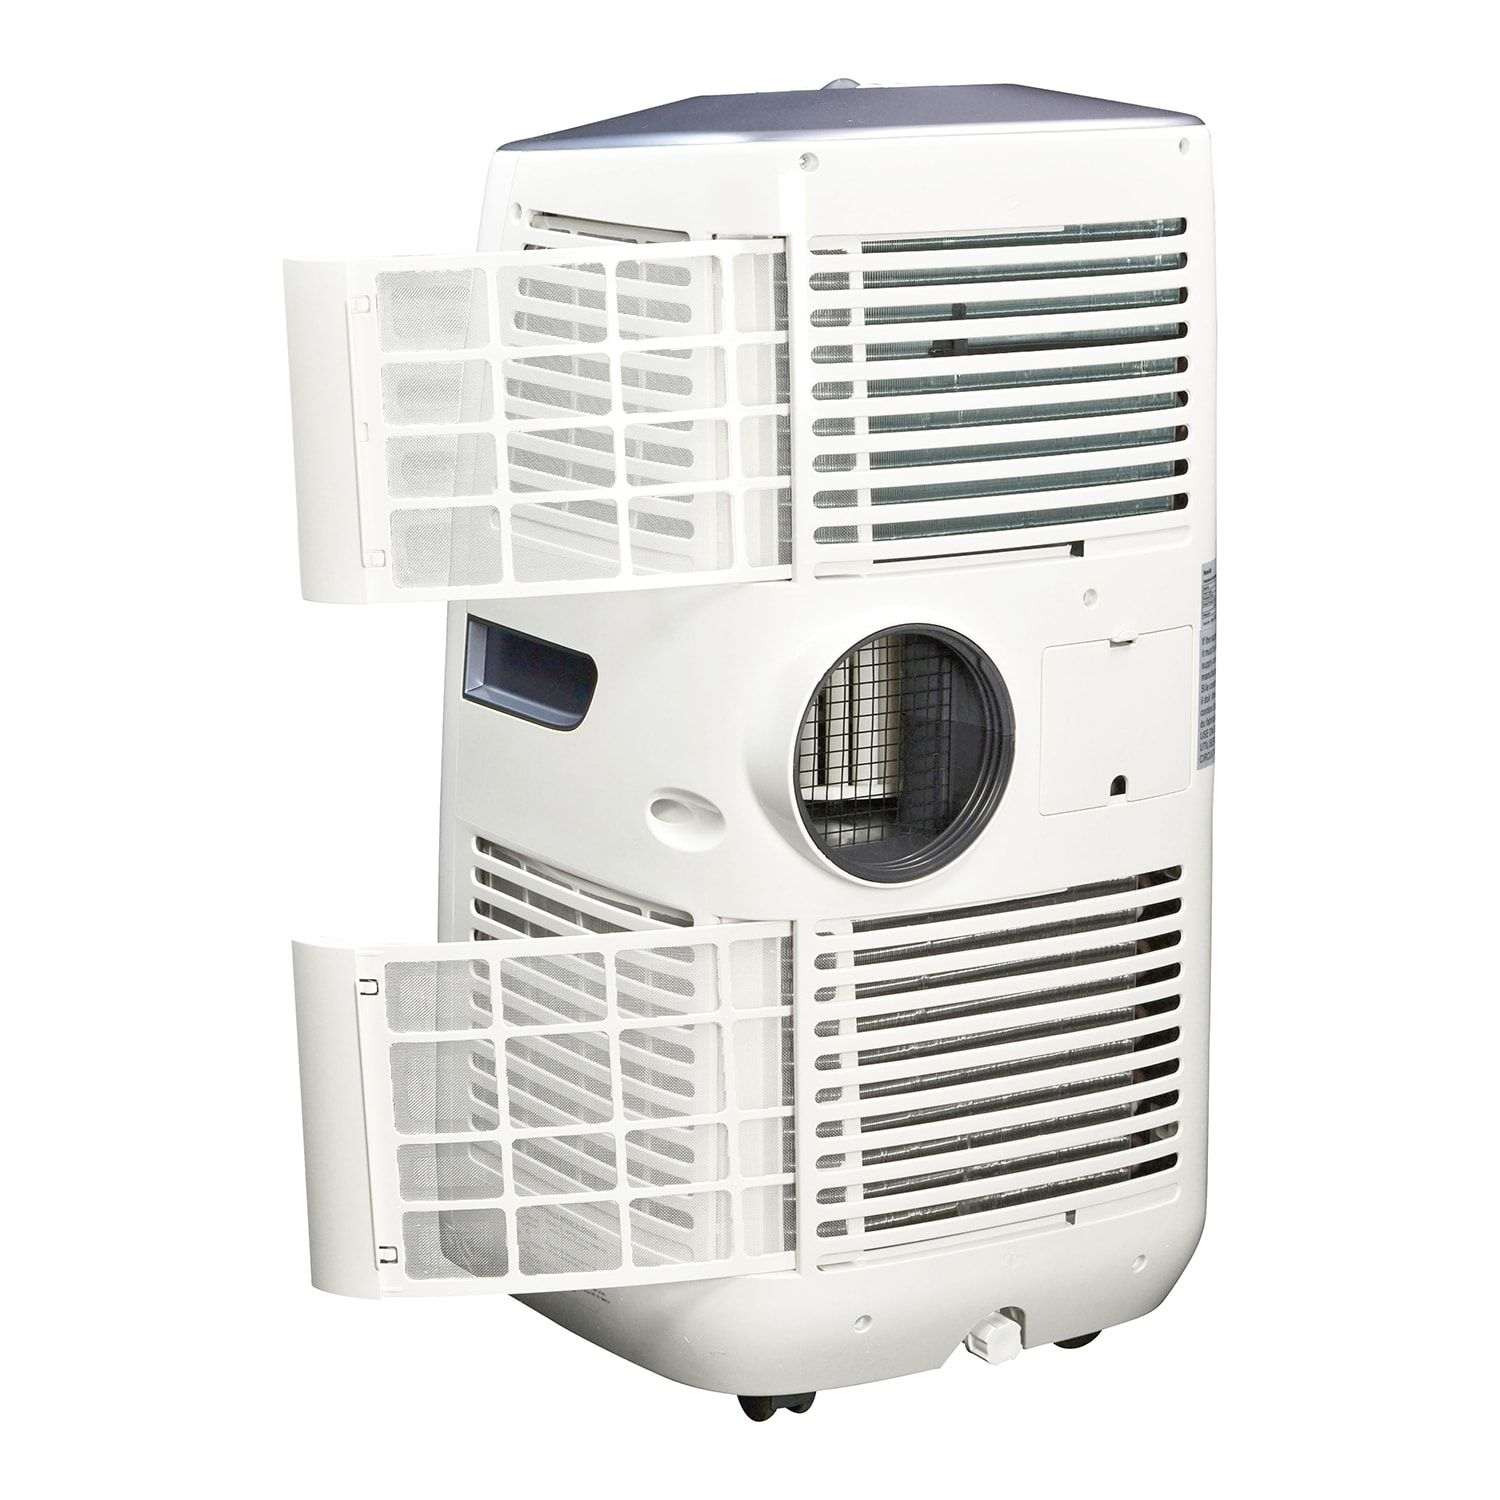 NewAir 14,000 BTU Portable Air Conditioner & Heater BTU